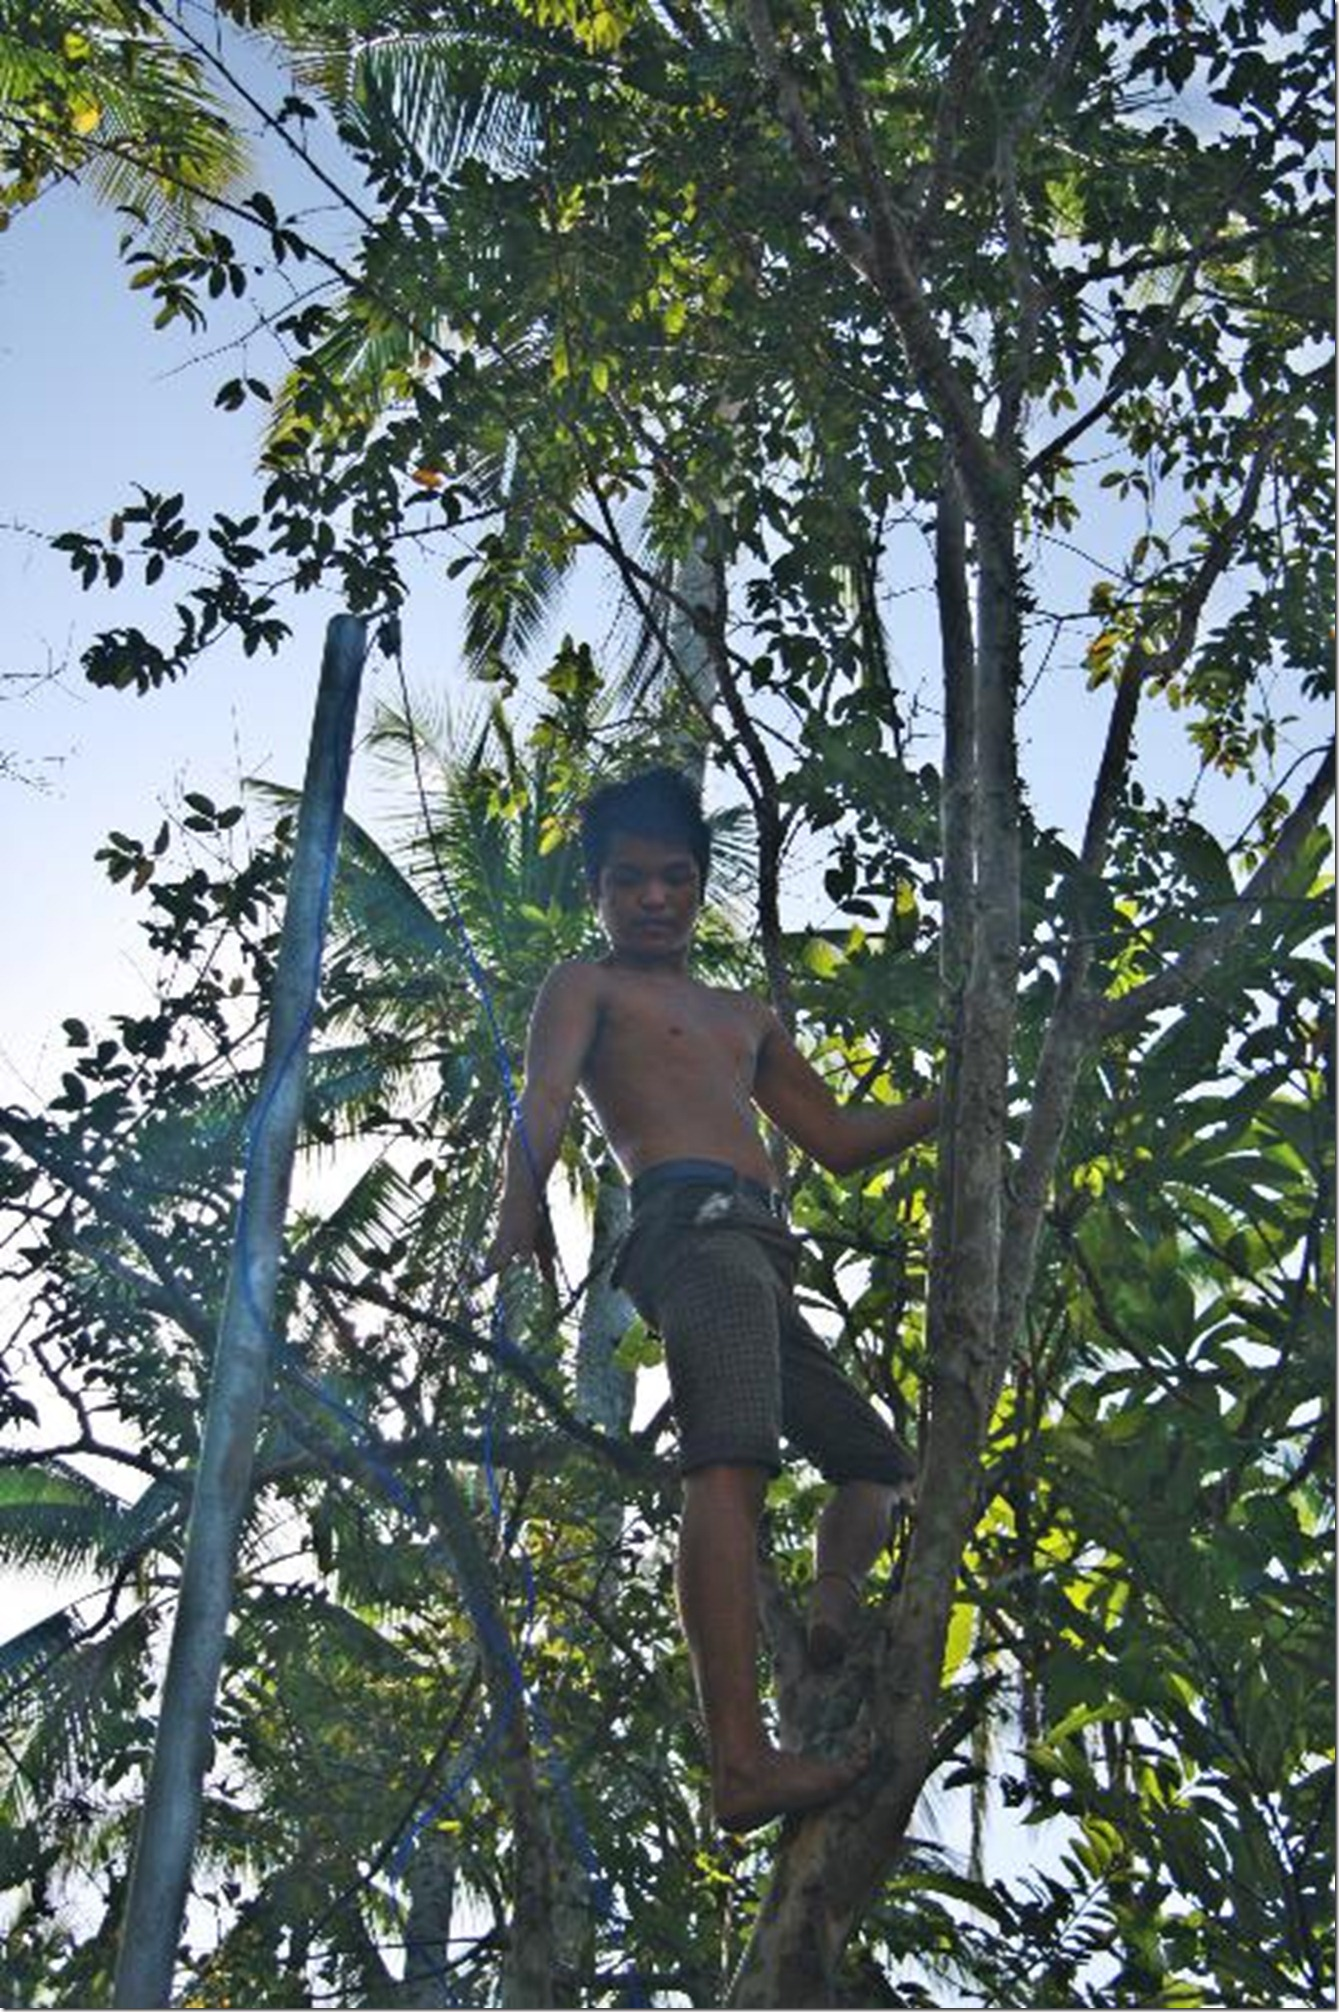 7_MARLON SALDANA CLIMBS A GUAVA TREE TO RETRIEVE THE FLAGPOLE LINE_6723_resized